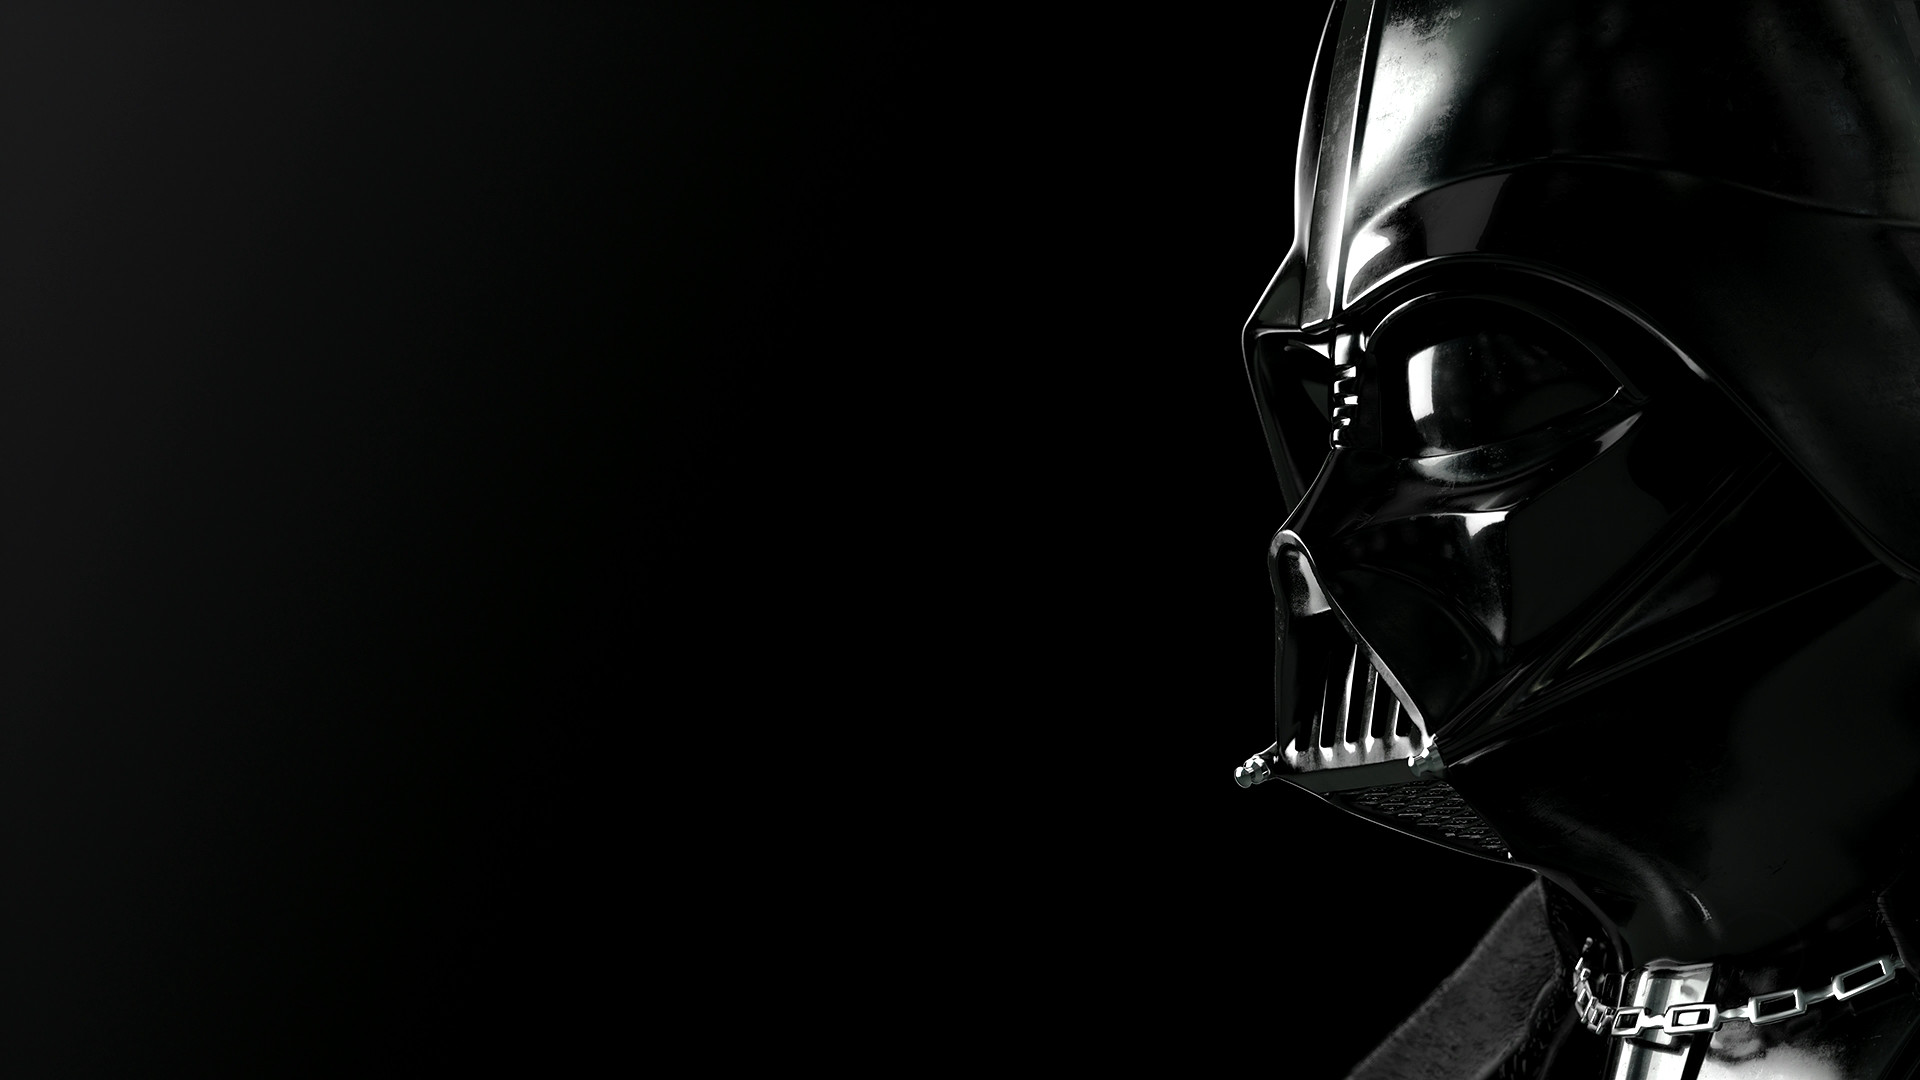 Darth Vader Background 73 Pictures